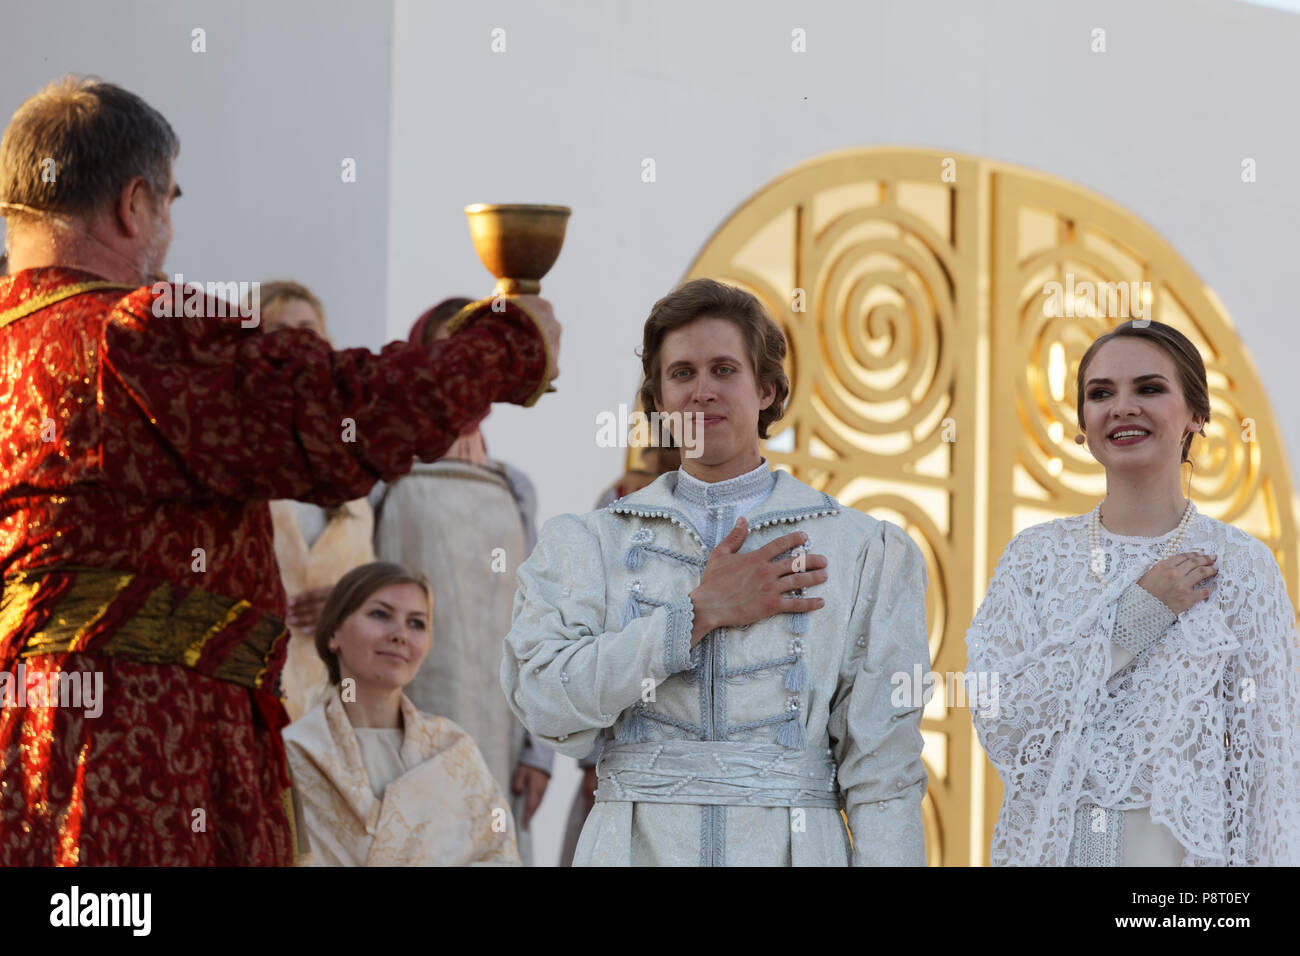 St. Petersburg, Russia - July 12, 2018: Olga Cheremnykh as Marfa (right) and Ilya Selivanov as Lykov (center) in the opera The Tsar's Bride of N. Rims - Stock Image